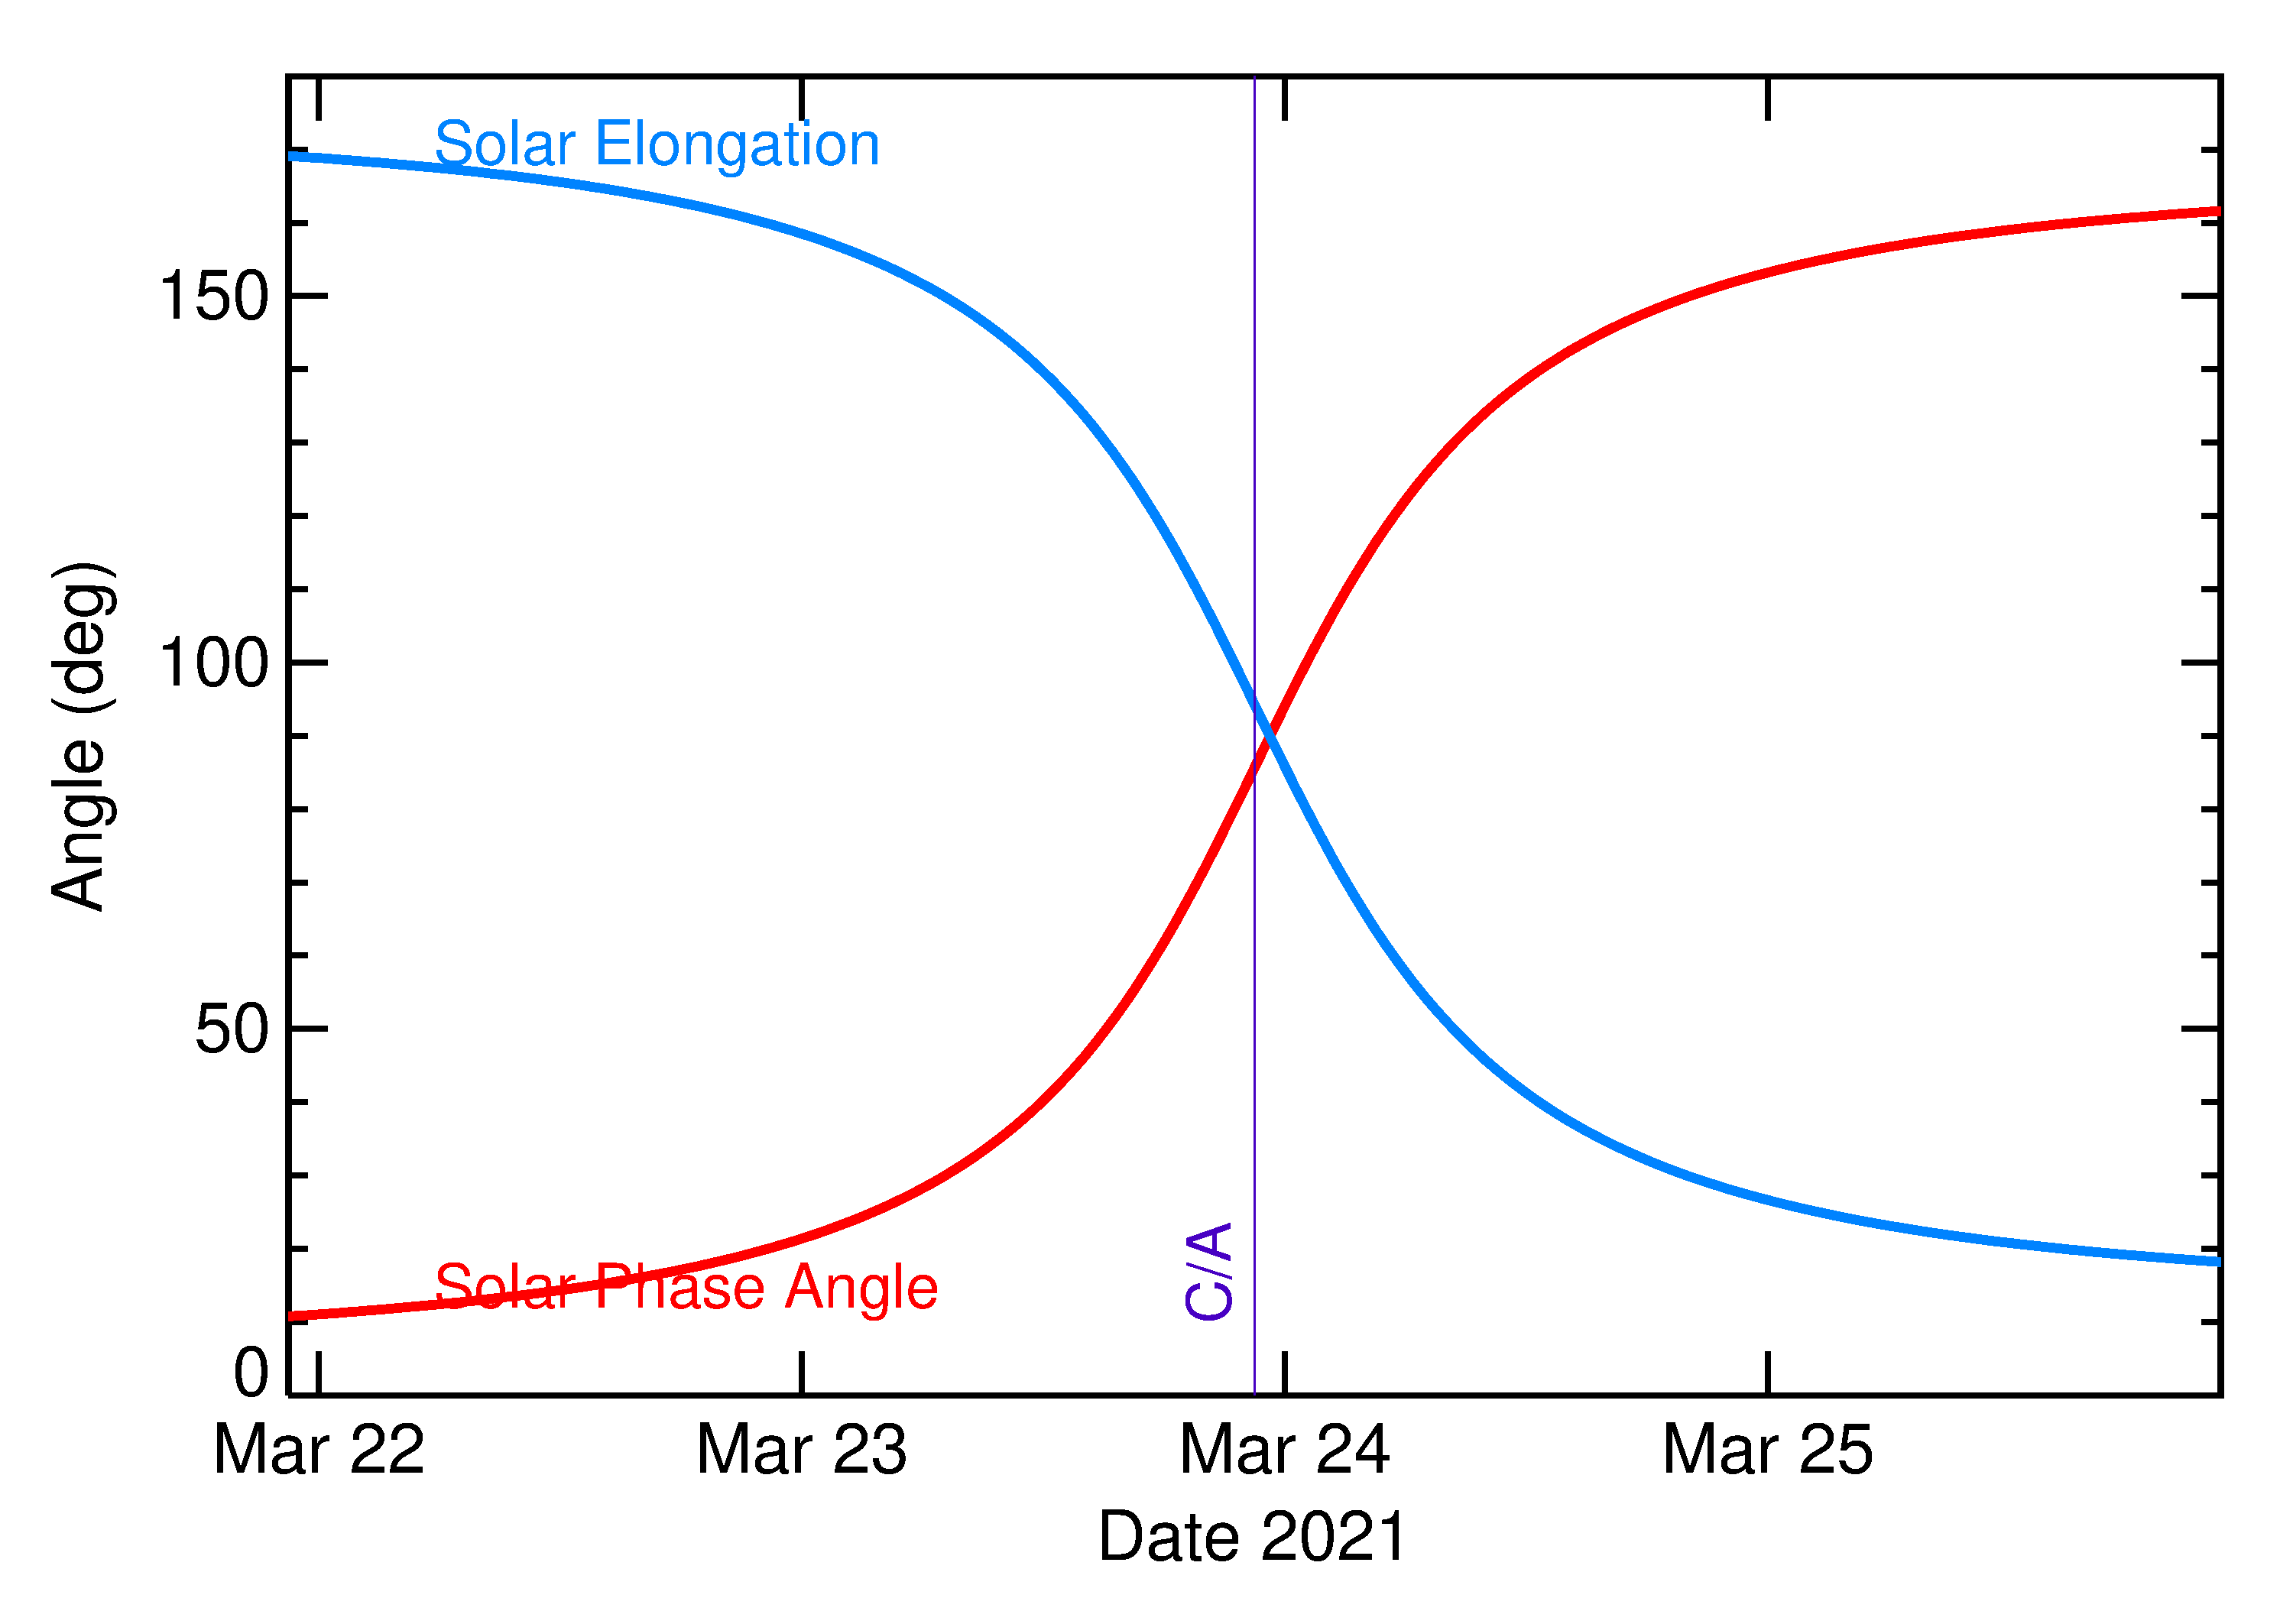 Solar Elongation and Solar Phase Angle of 2021 FP2 in the days around closest approach